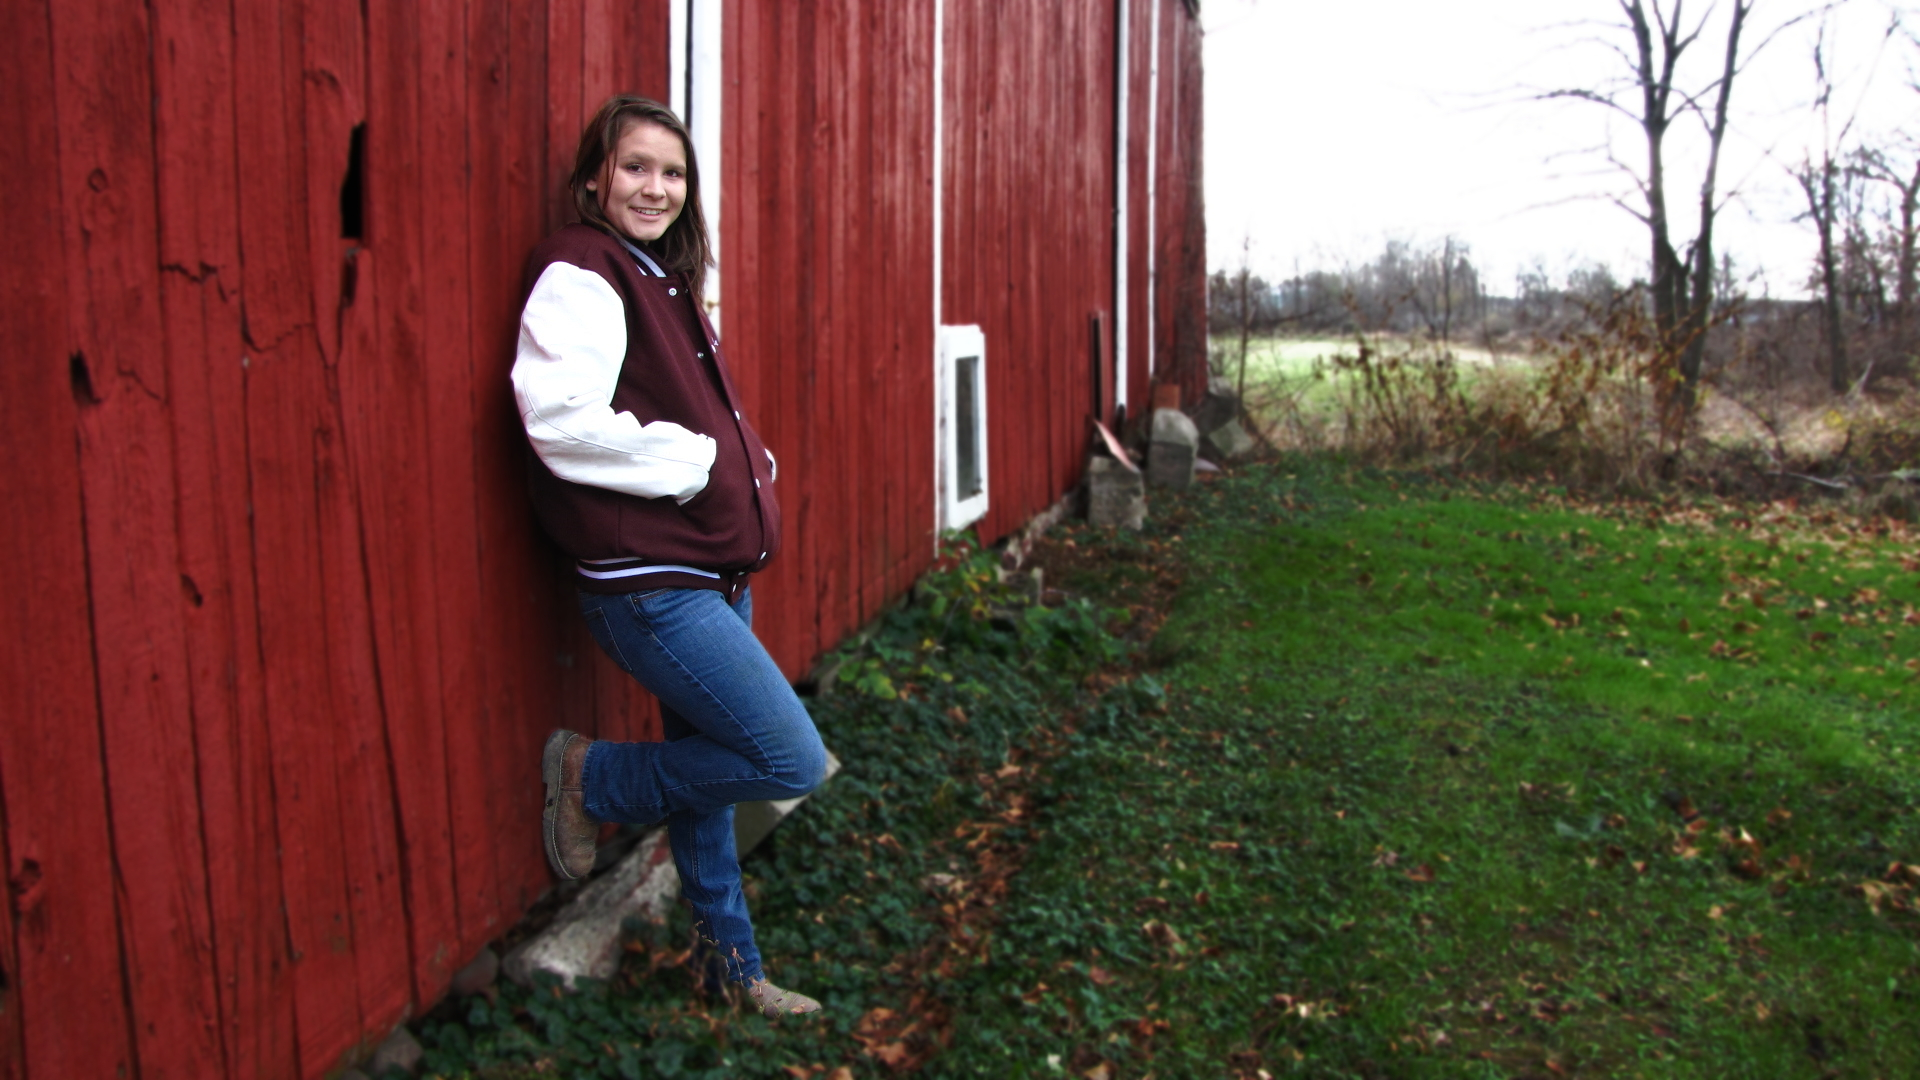 Leaning on the Red Barn